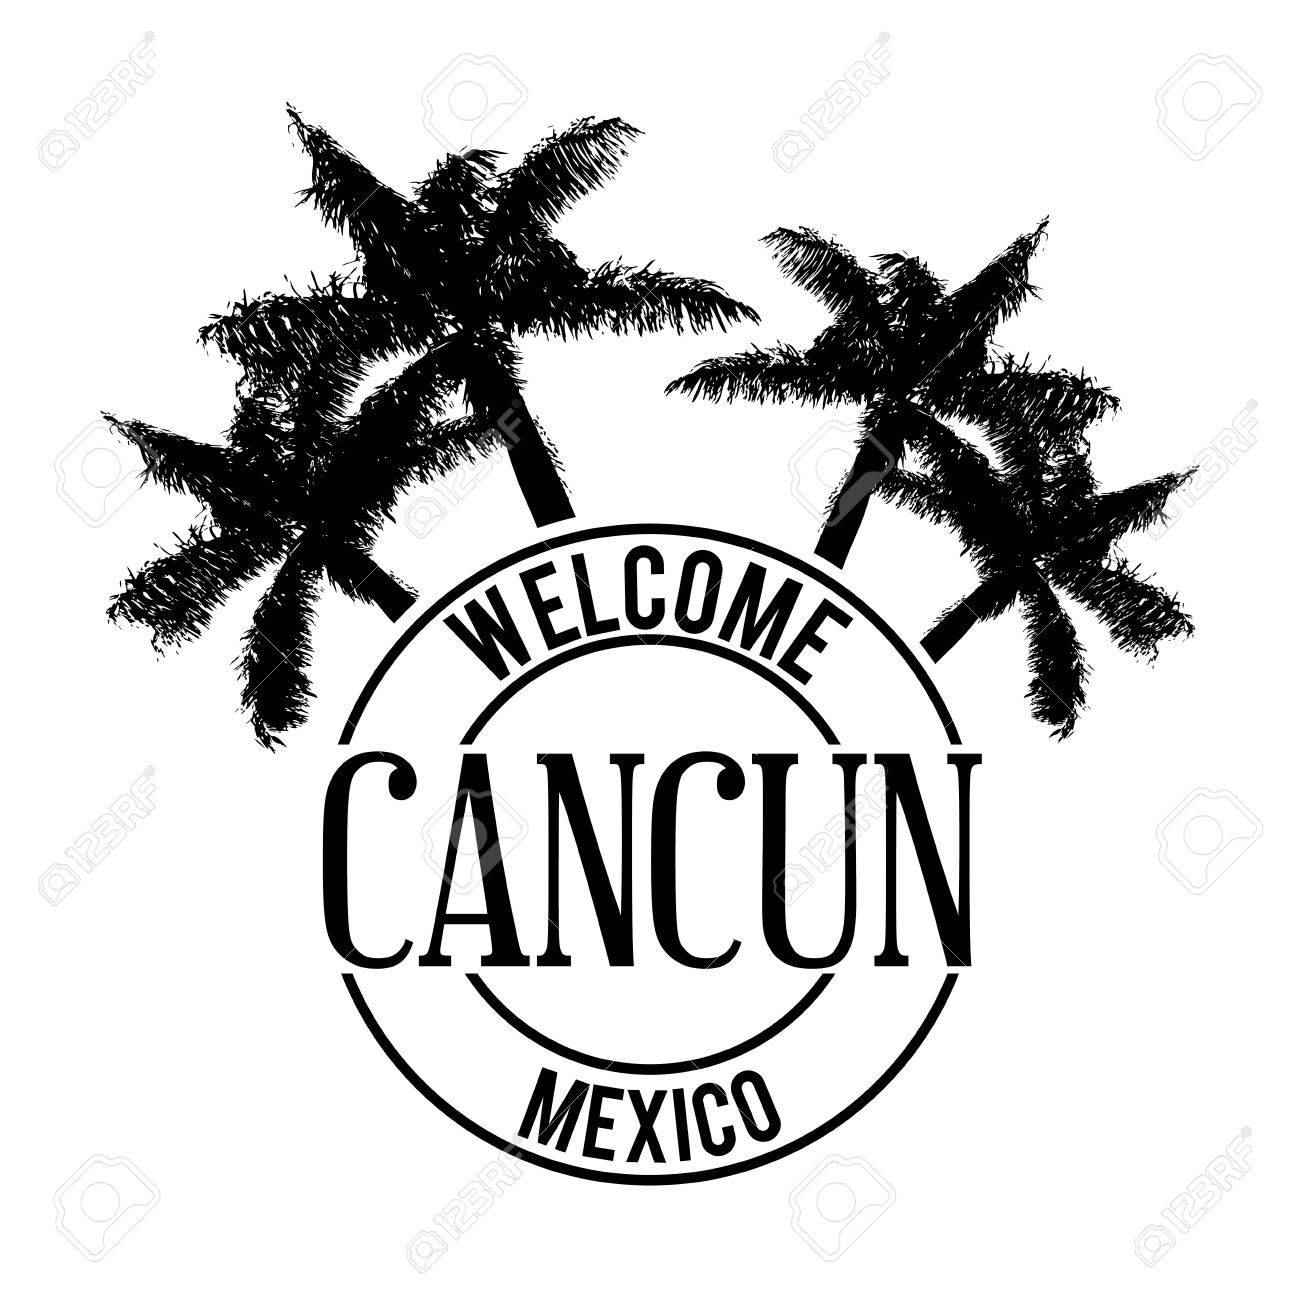 Mexico Design Over White Background Vector Illustration Royalty